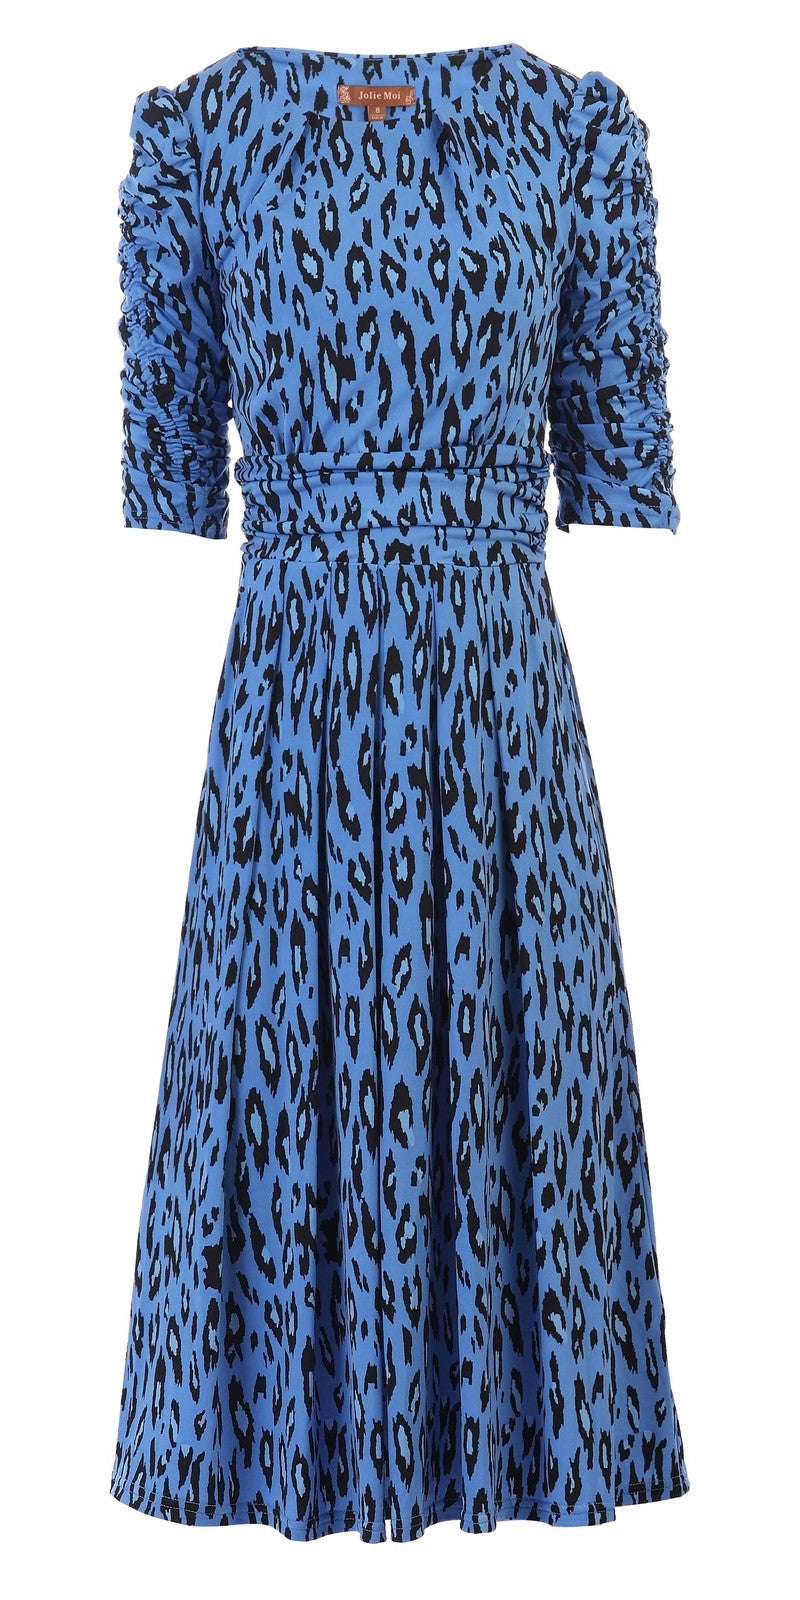 Caroline Blue Leopard Print Dress 3/4 Length Sleeves